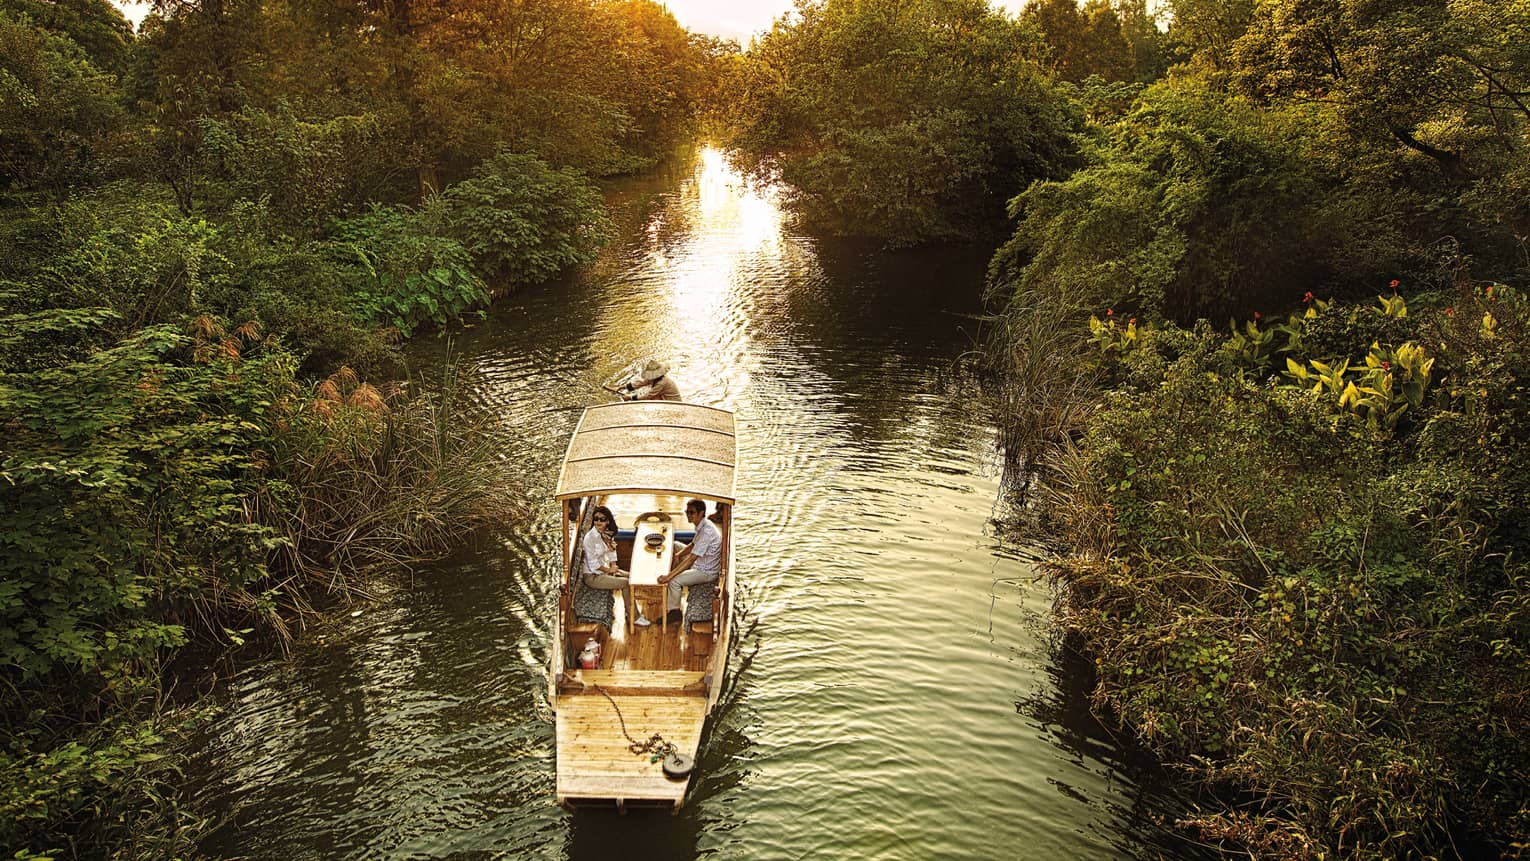 Couple in Chinese wooden row boat travelling through West Lake marsh